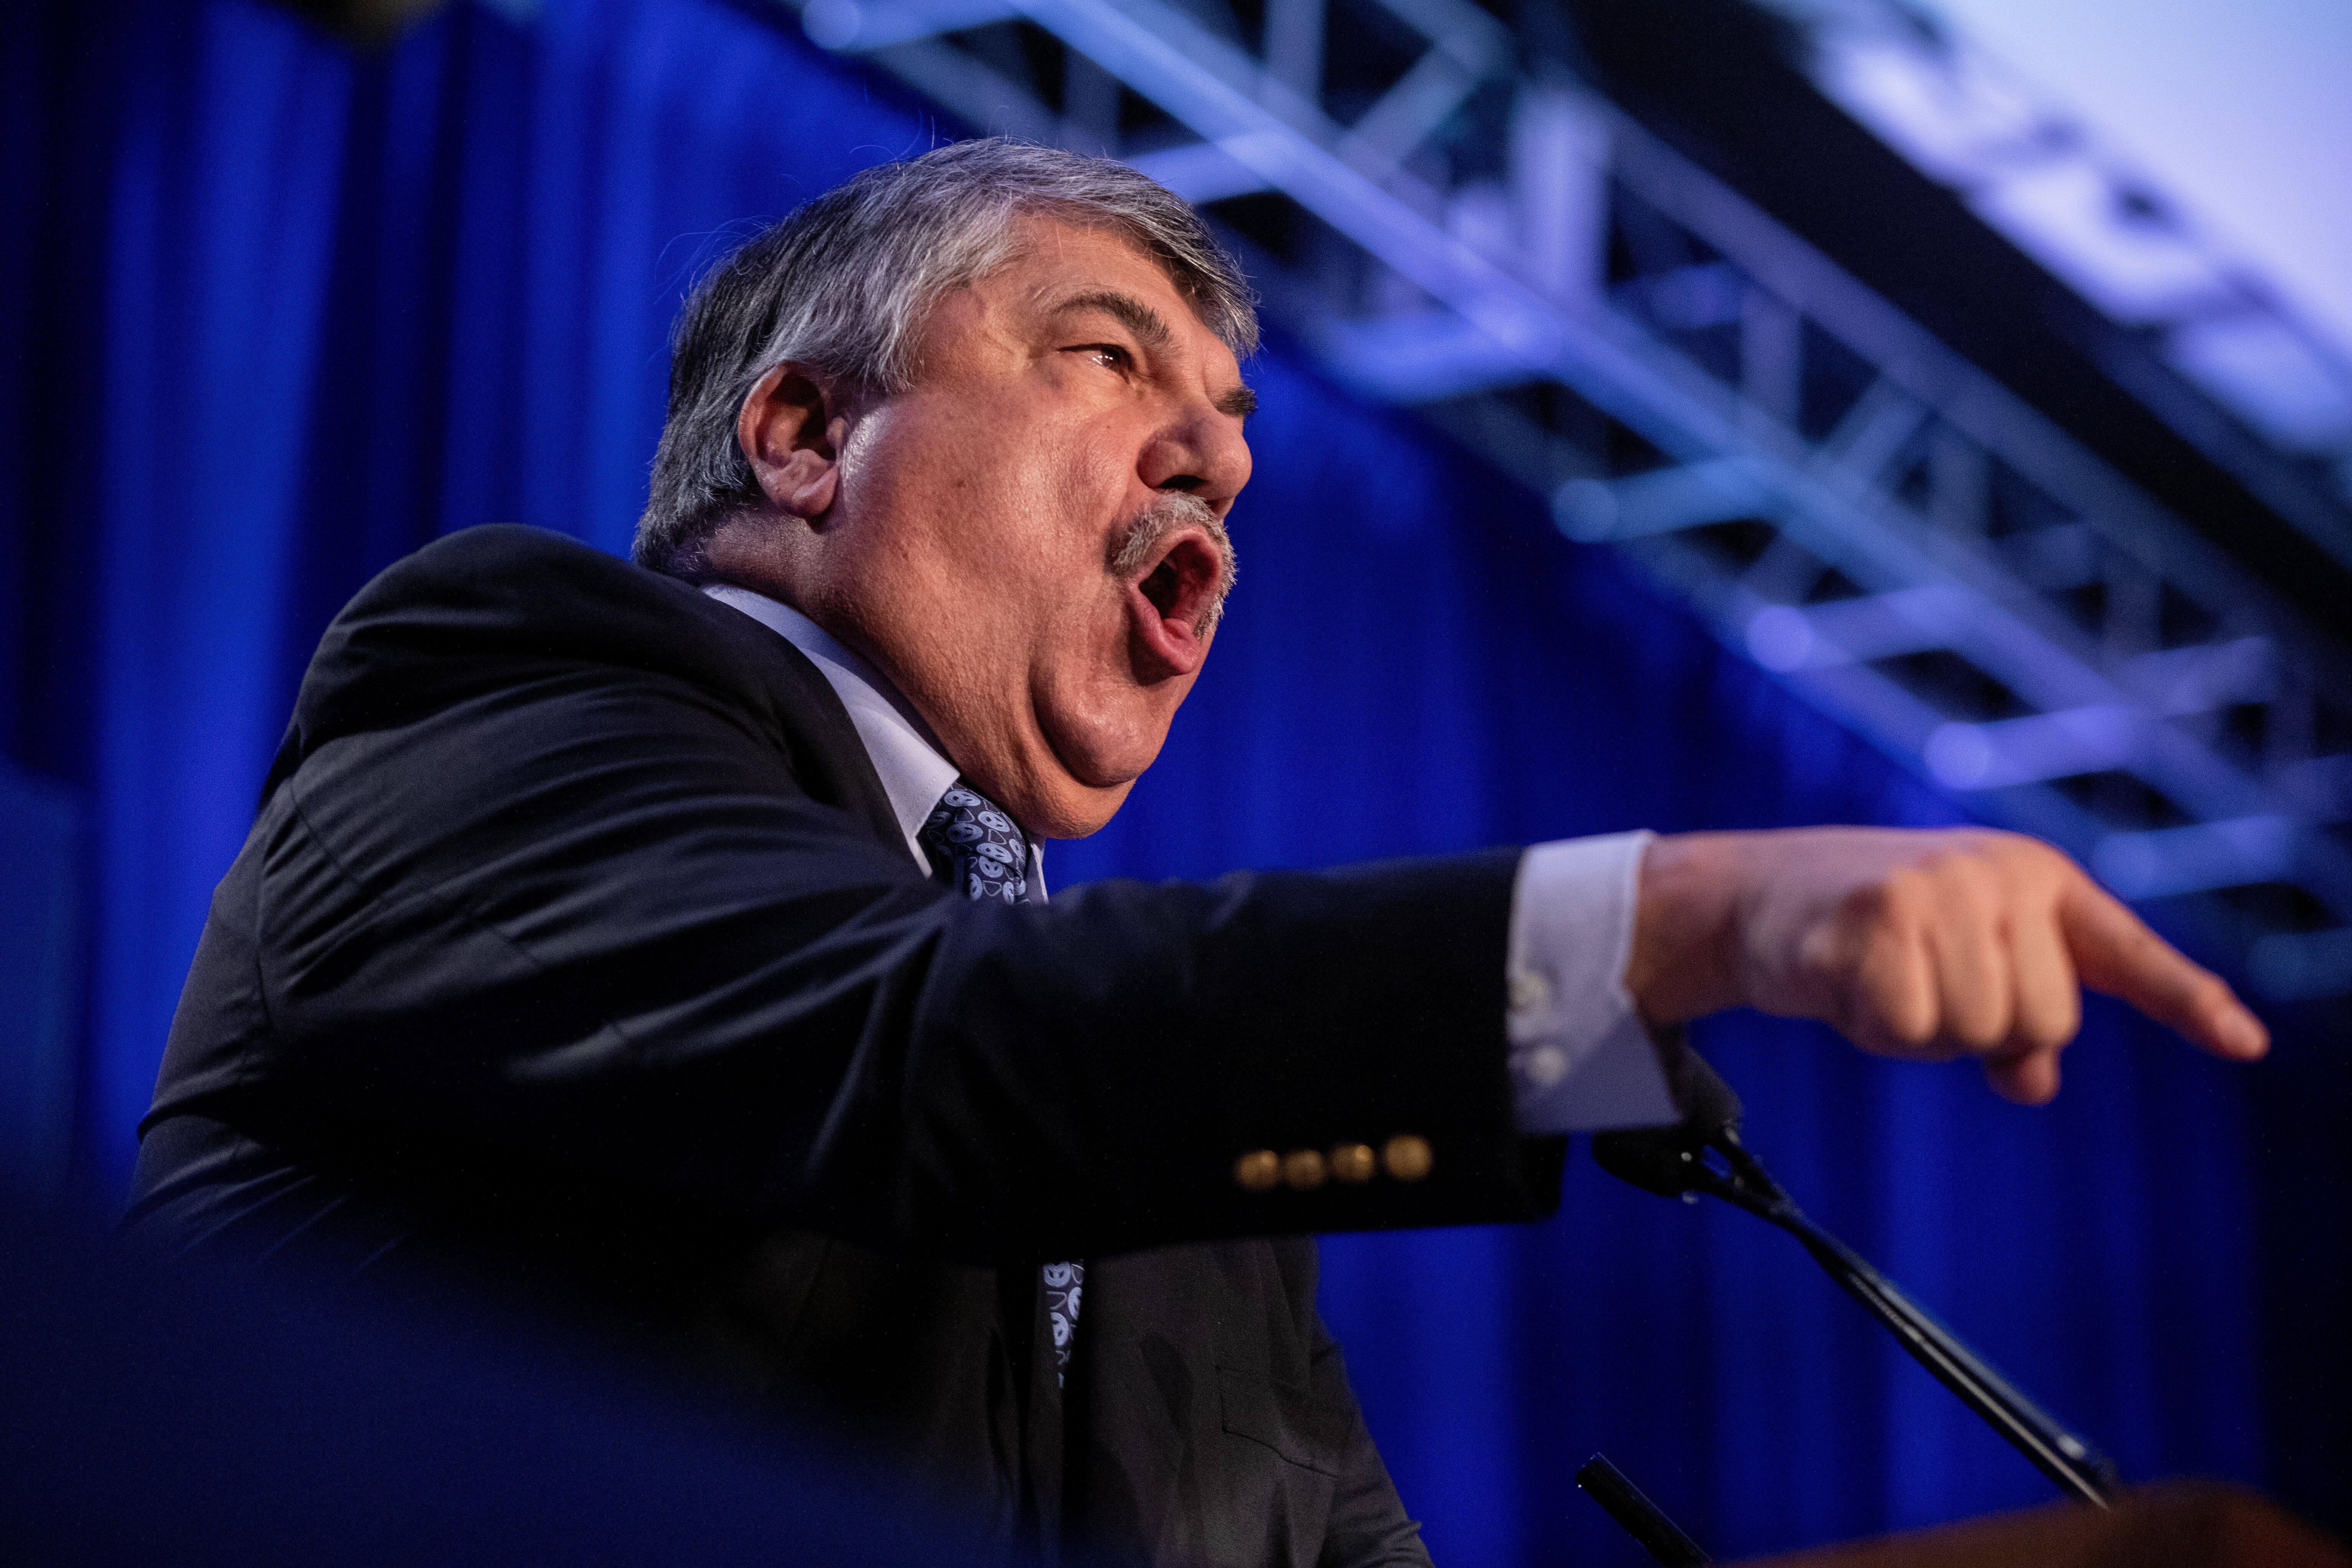 Richard Trumka, president of the AFL-CIO, speaks at a labor conference in February 2020. Avendaño believes that her an